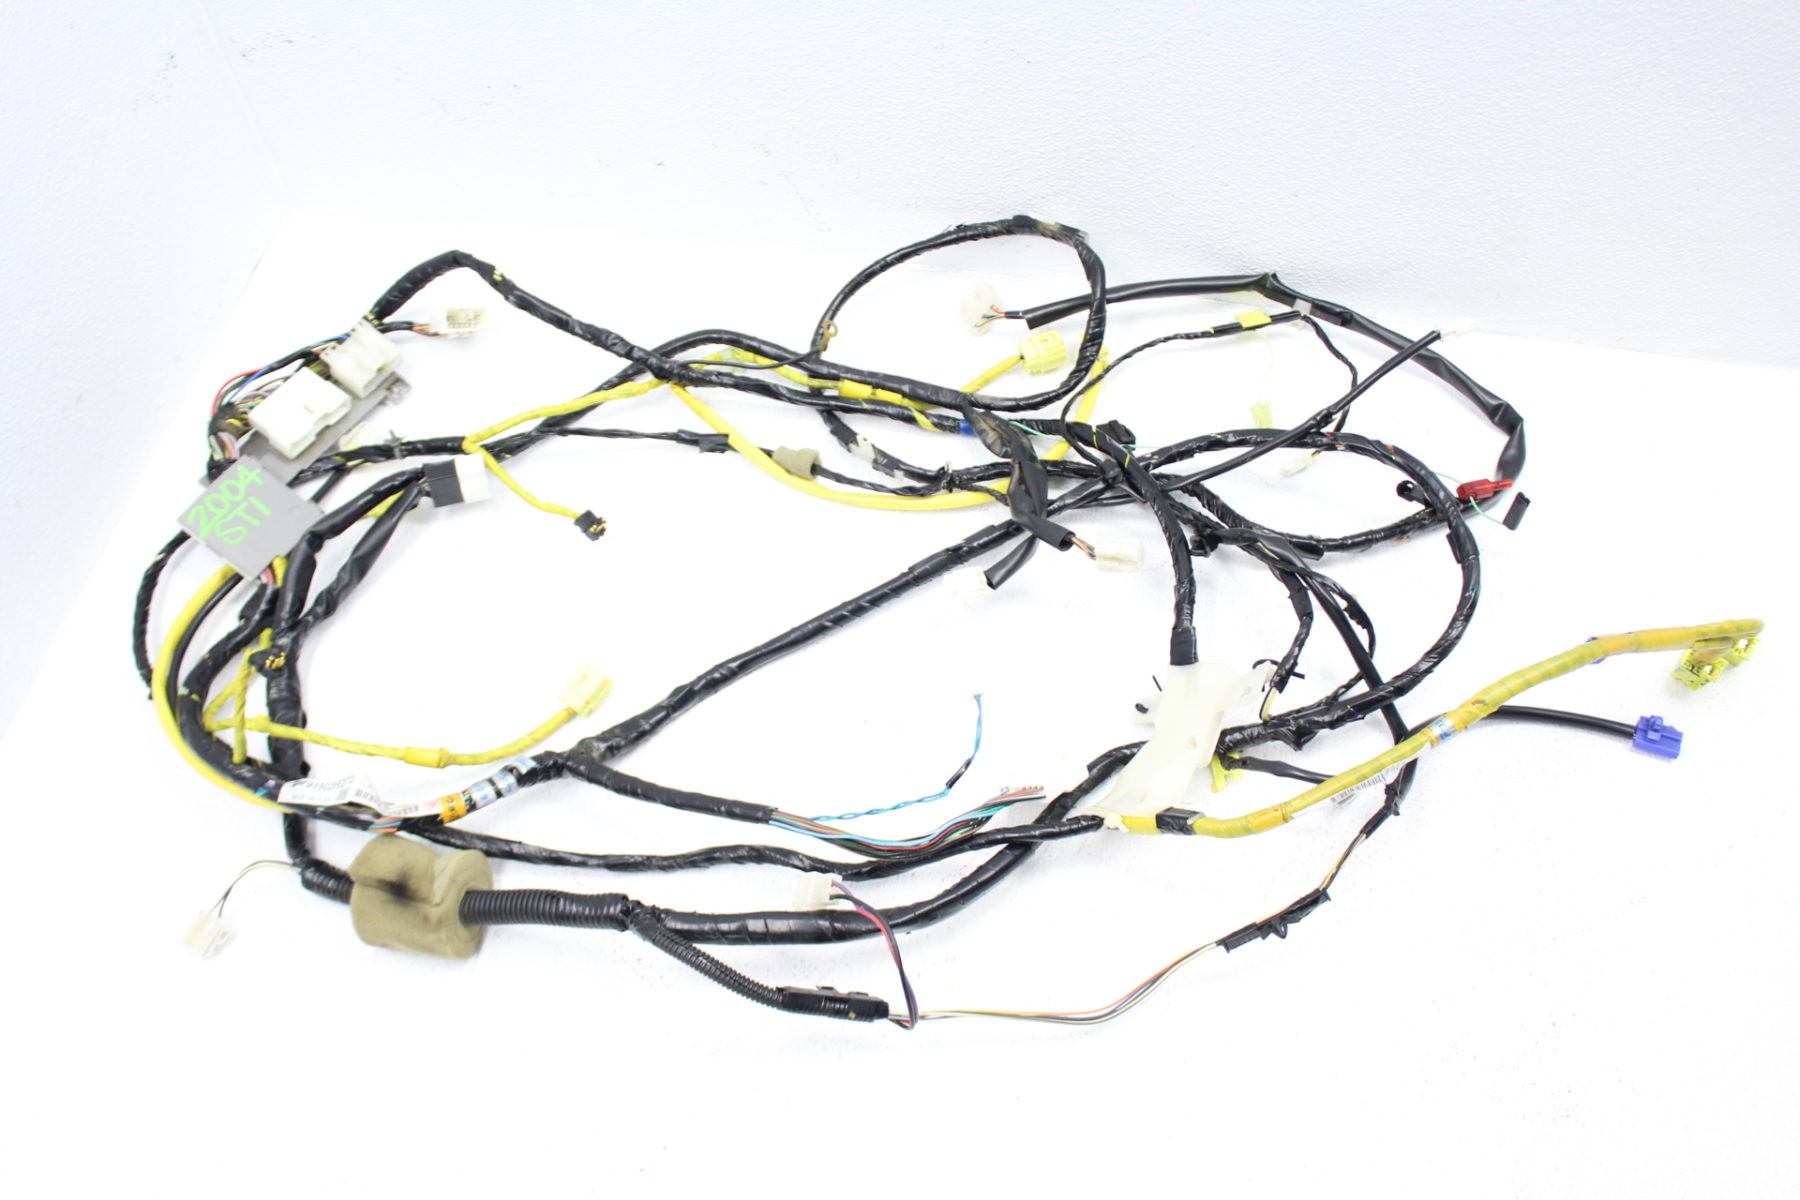 hight resolution of 2004 2005 subaru impreza wrx sti interior floor seat wiring harness